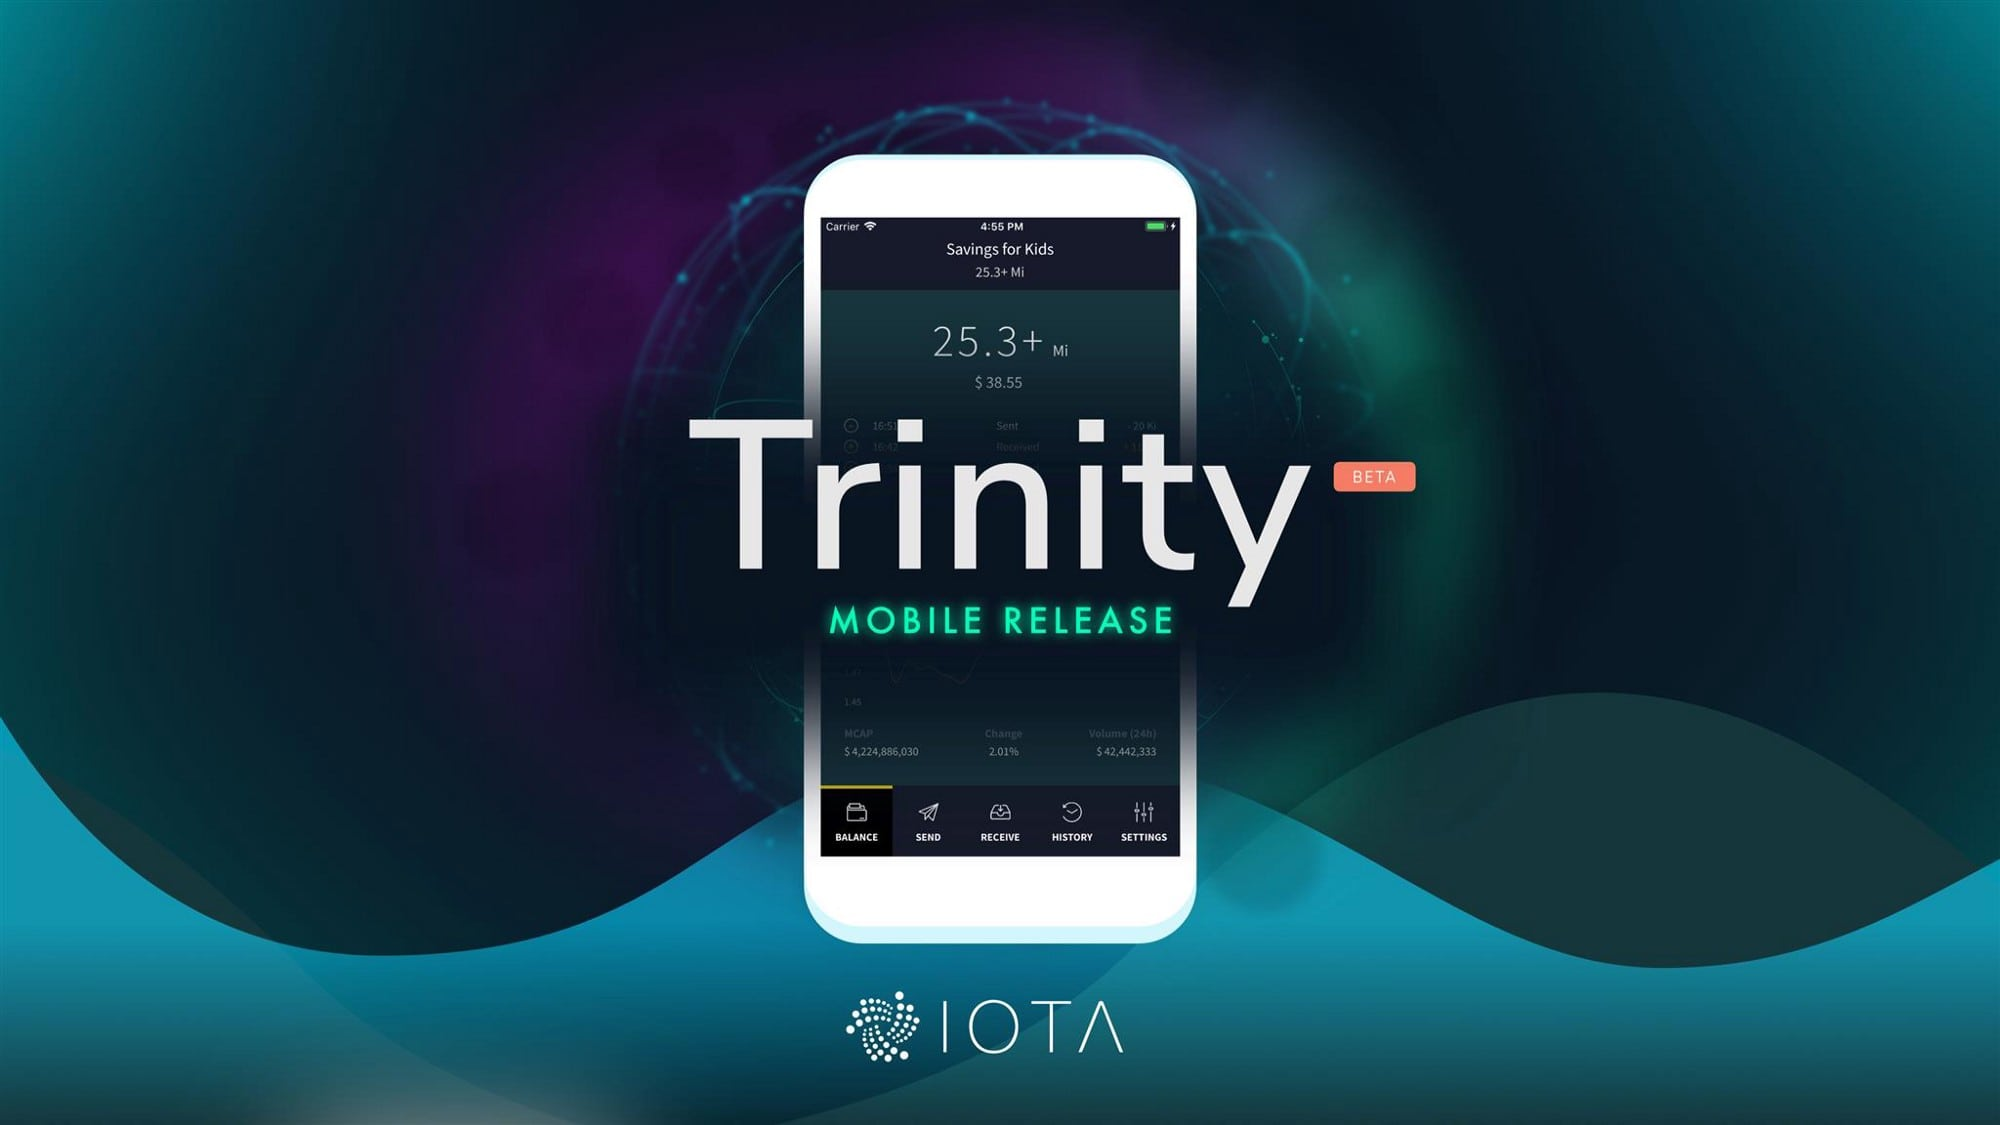 1 JZGeobCr5DwrTZcI6DoL5Q - IOTA Unveils Massive Trinity Update – Enhanced Security For The Mobile Wallet And More